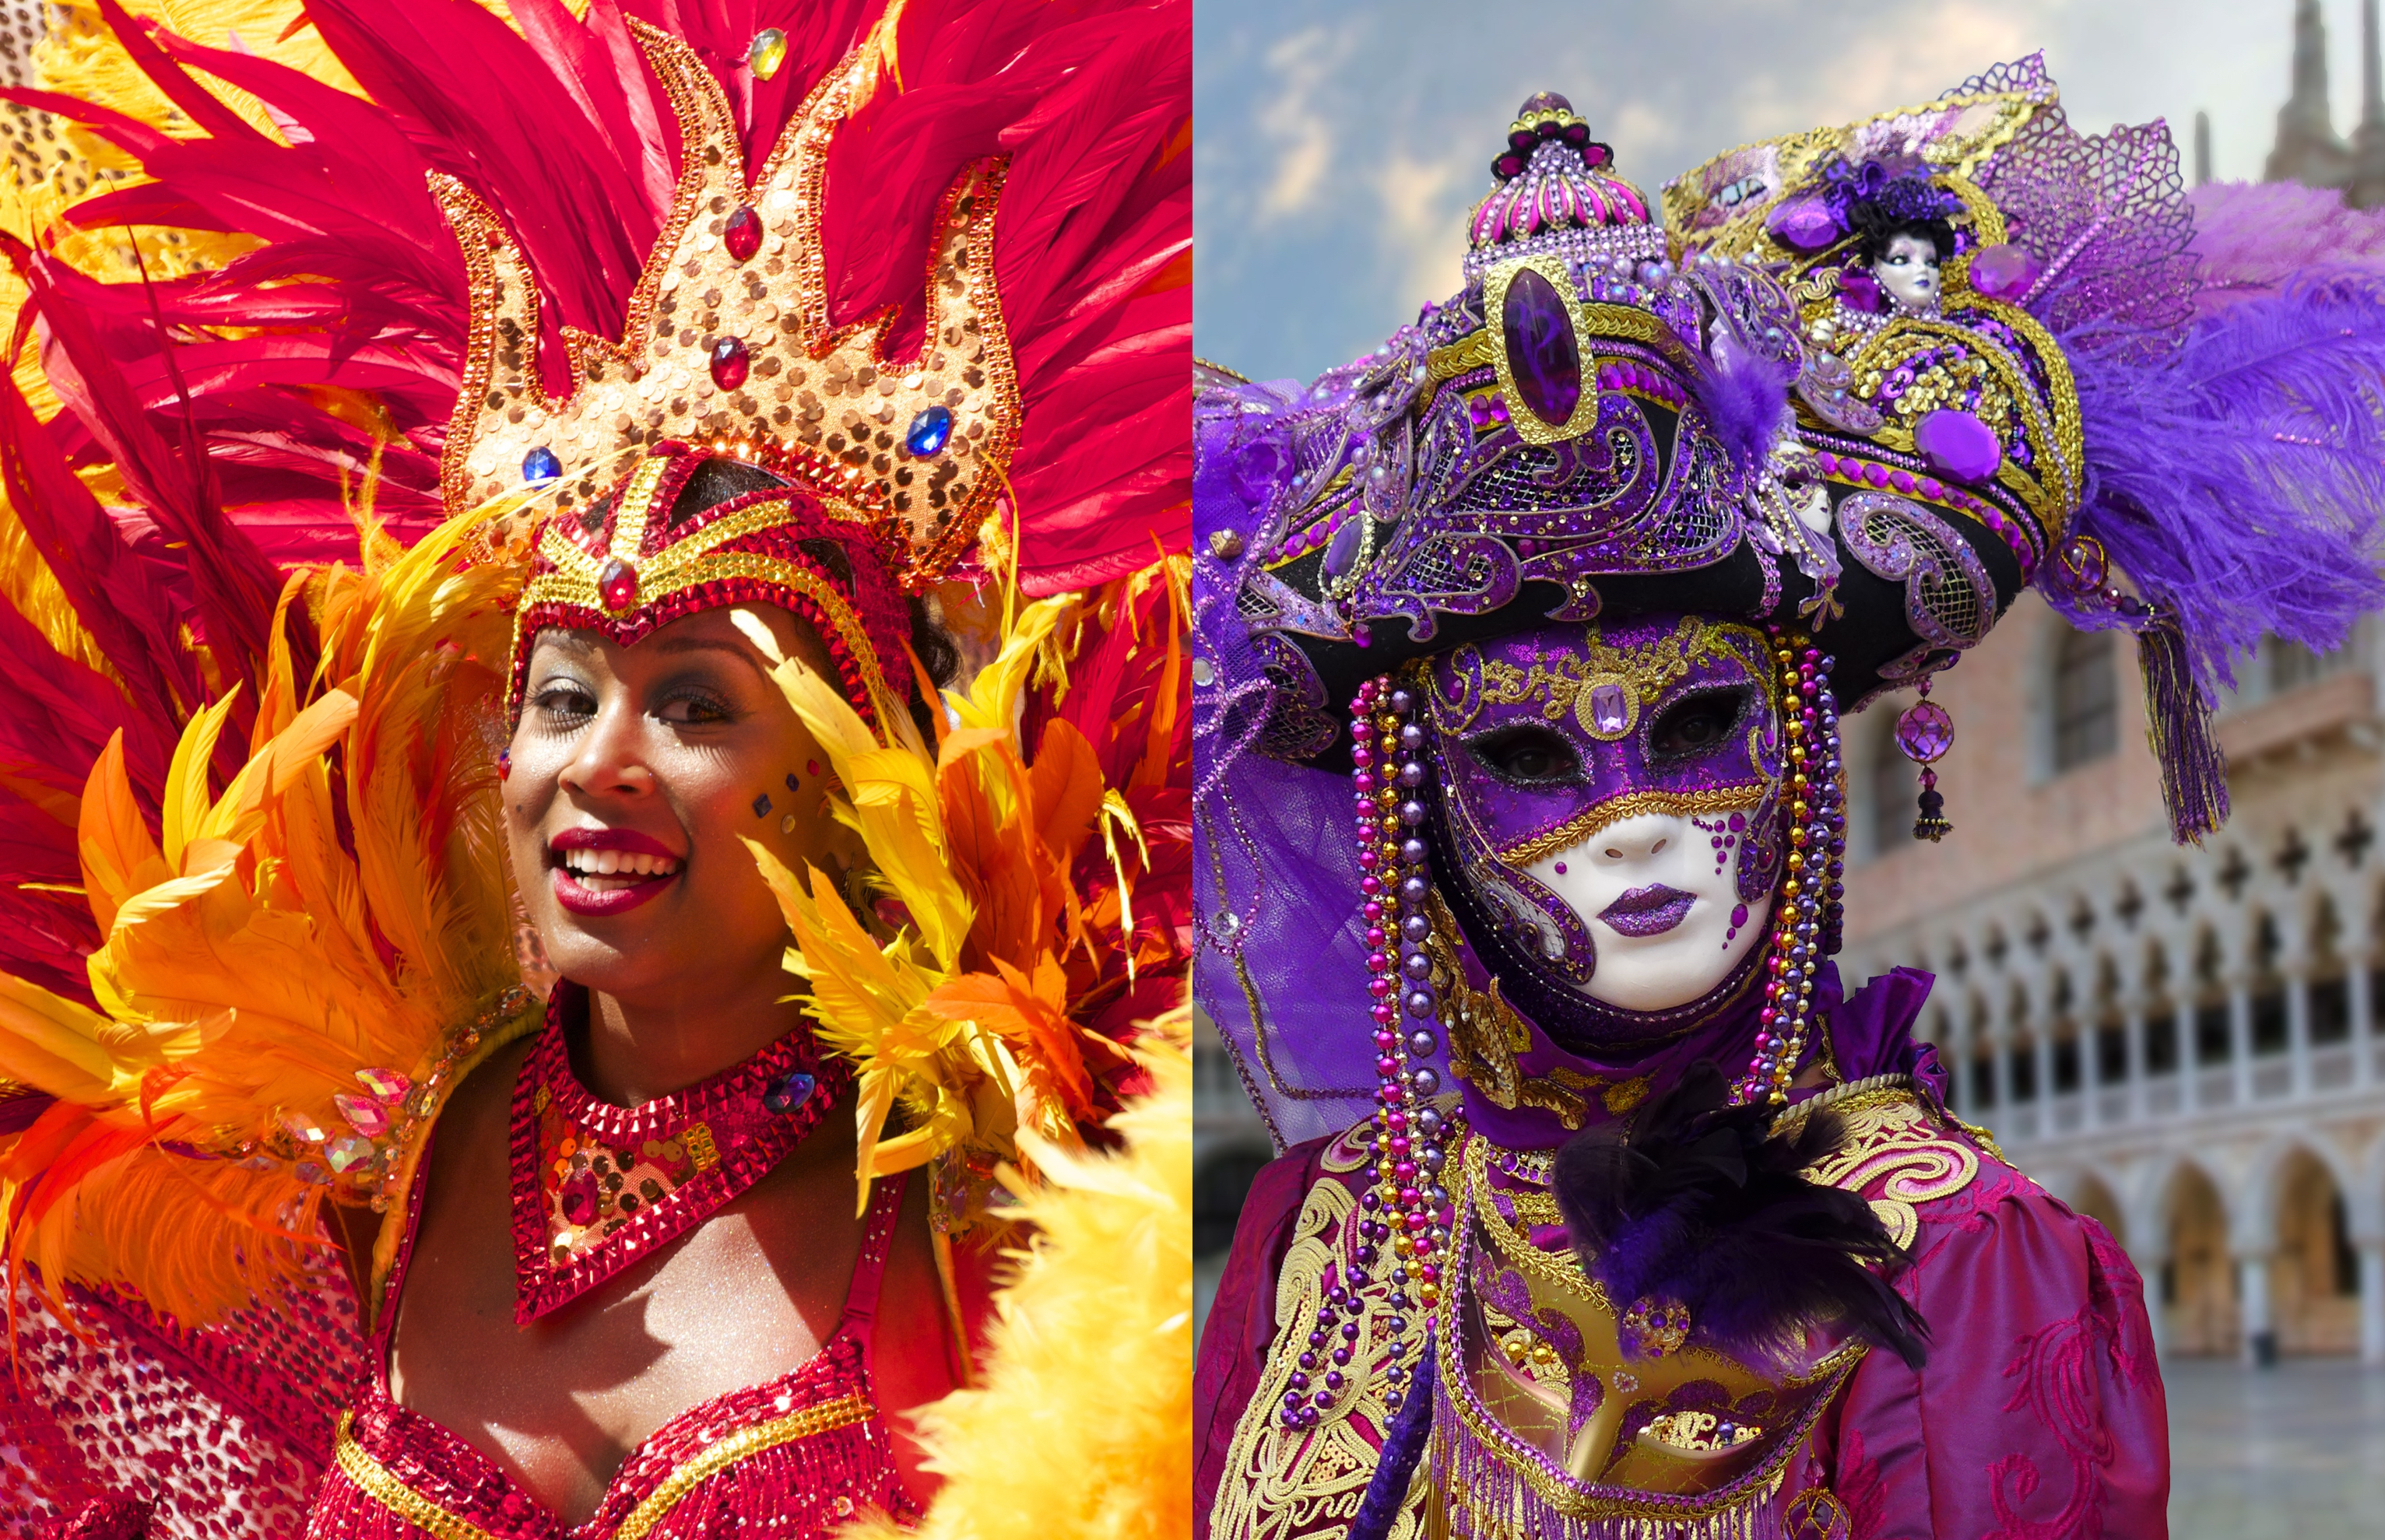 Carnivals from around the world - Venice and Rio de Janeiro